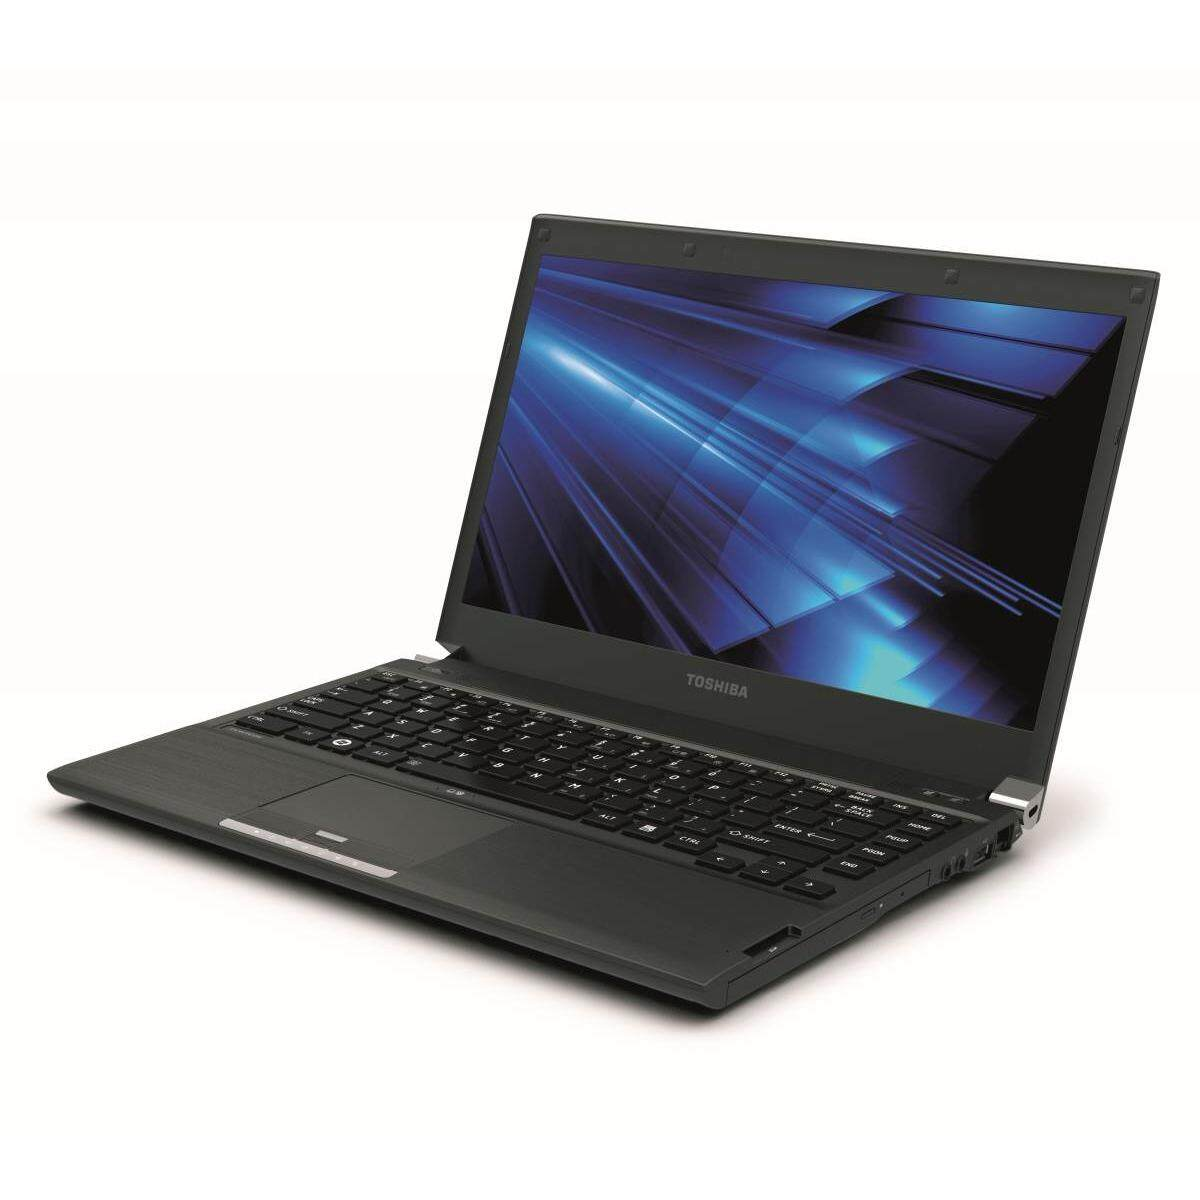 Toshiba Portégé R700 Notebook Core (TM) i7 M620 2.67 GHz, 4GB ,128GB SSD (Refurbished) Malaysia